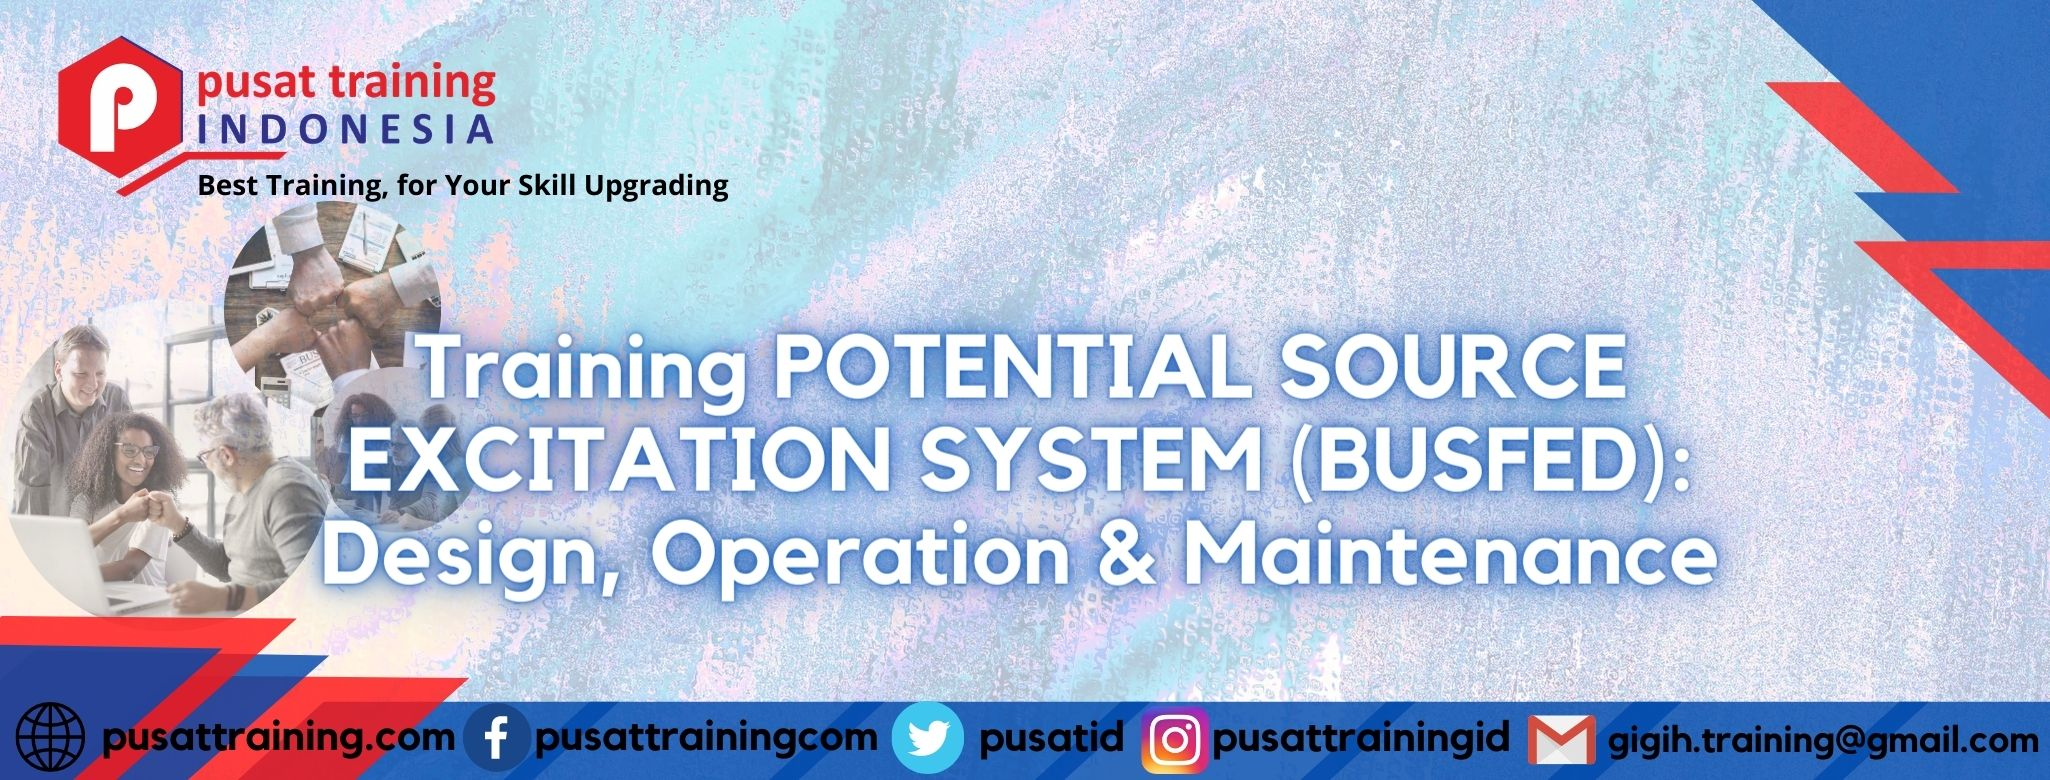 Training-POTENTIAL-SOURCE-EXCITATION-SYSTEM-BUSFED-Design-Operation-Maintenance.